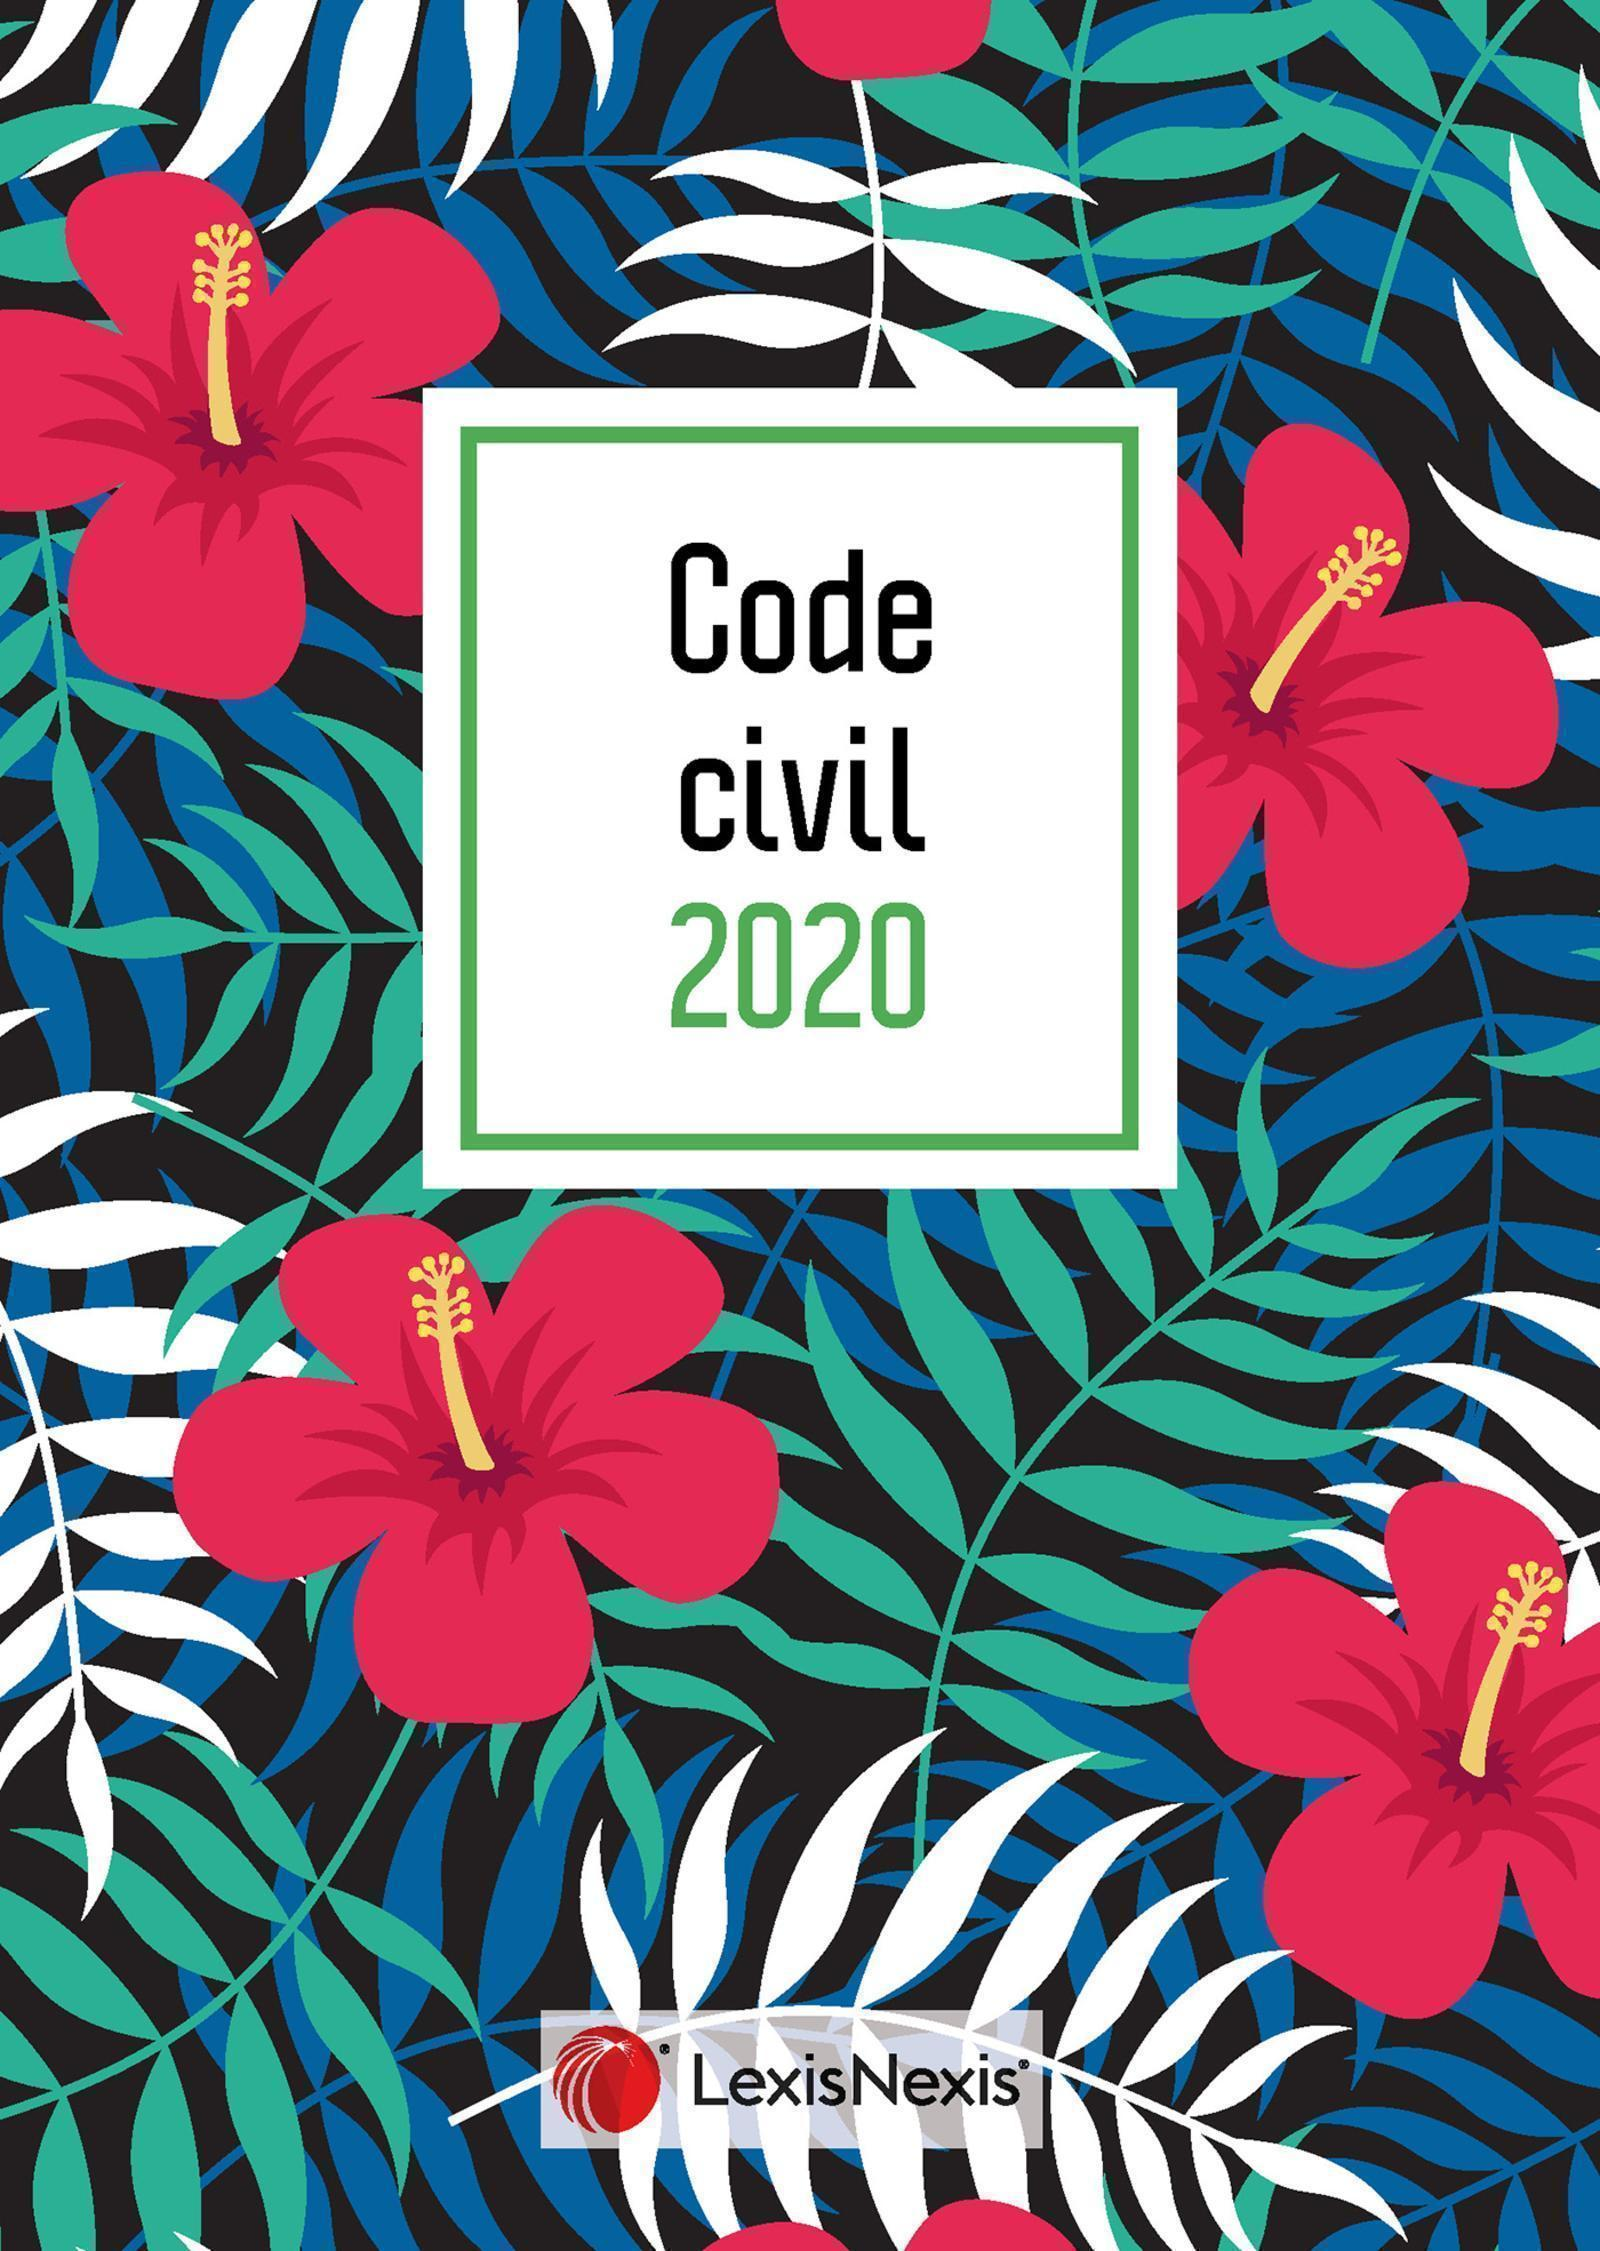 CODE CIVIL 2020 HIBISCUS